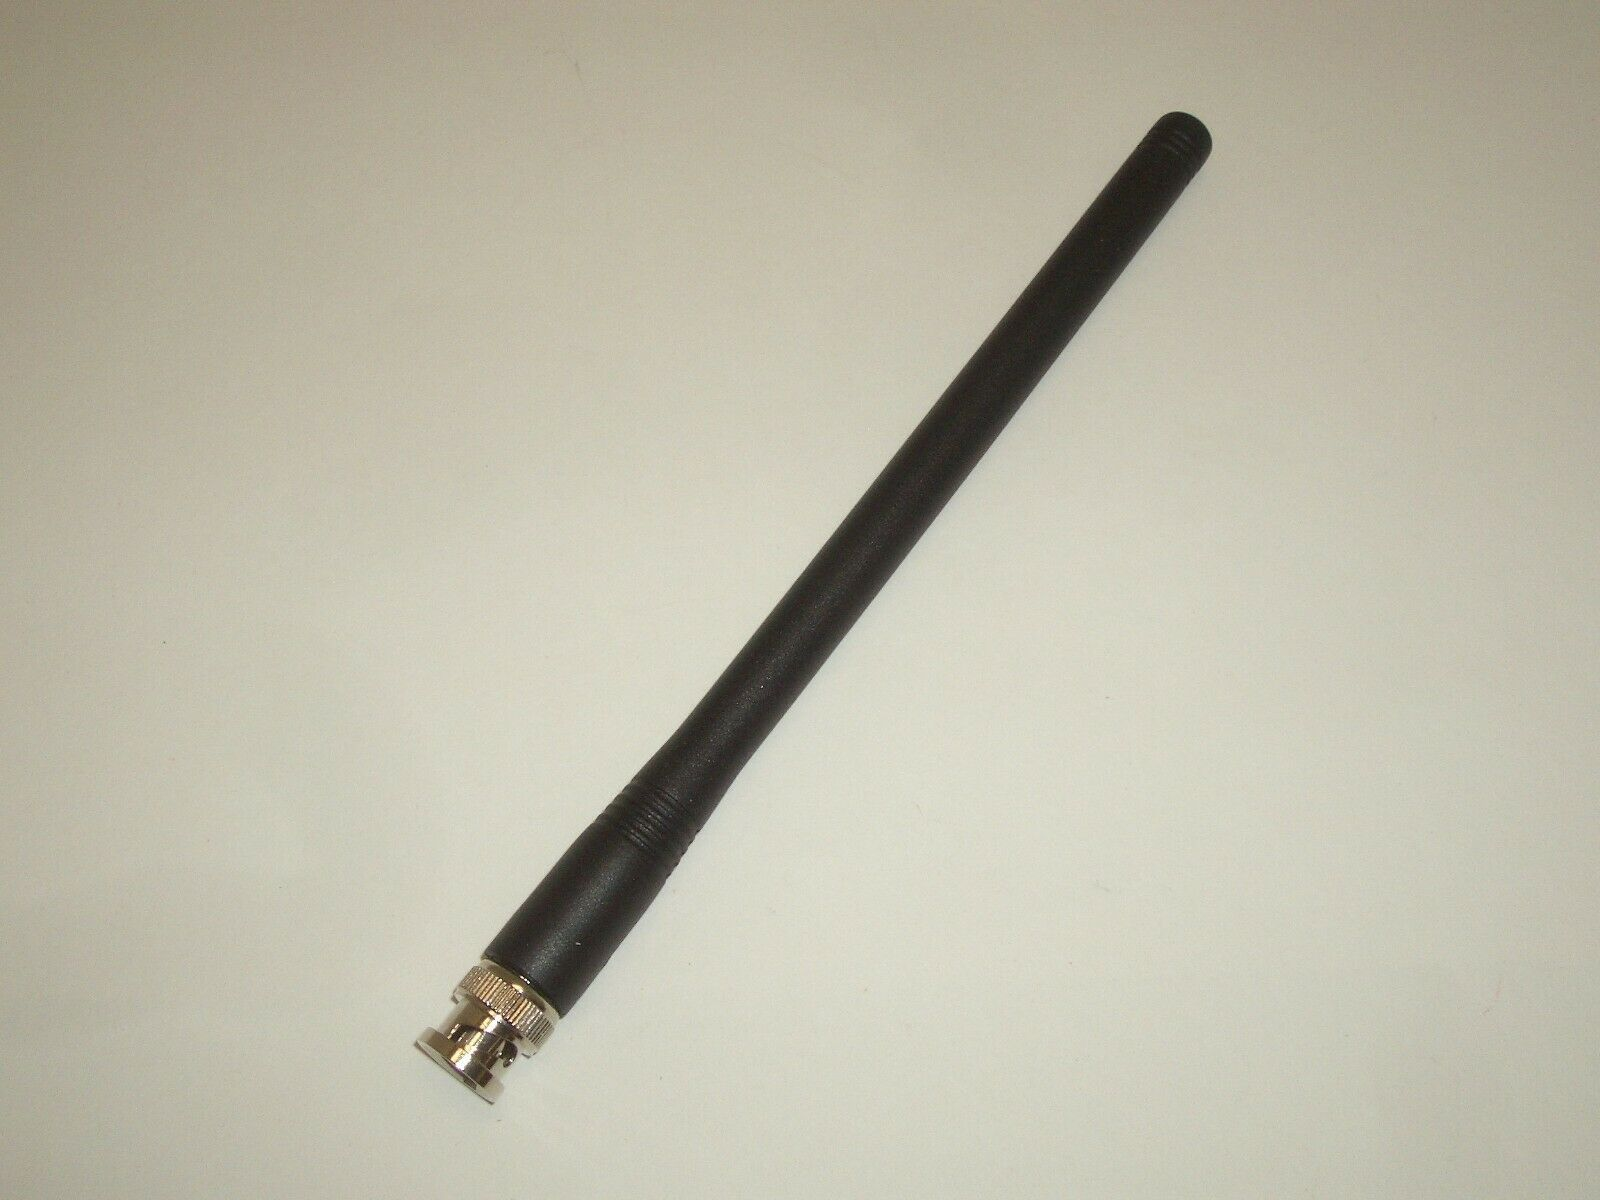 COBRA 043010N001 REPLACEMENT RUBBER DUCK ANTENNA FOR COBRA H